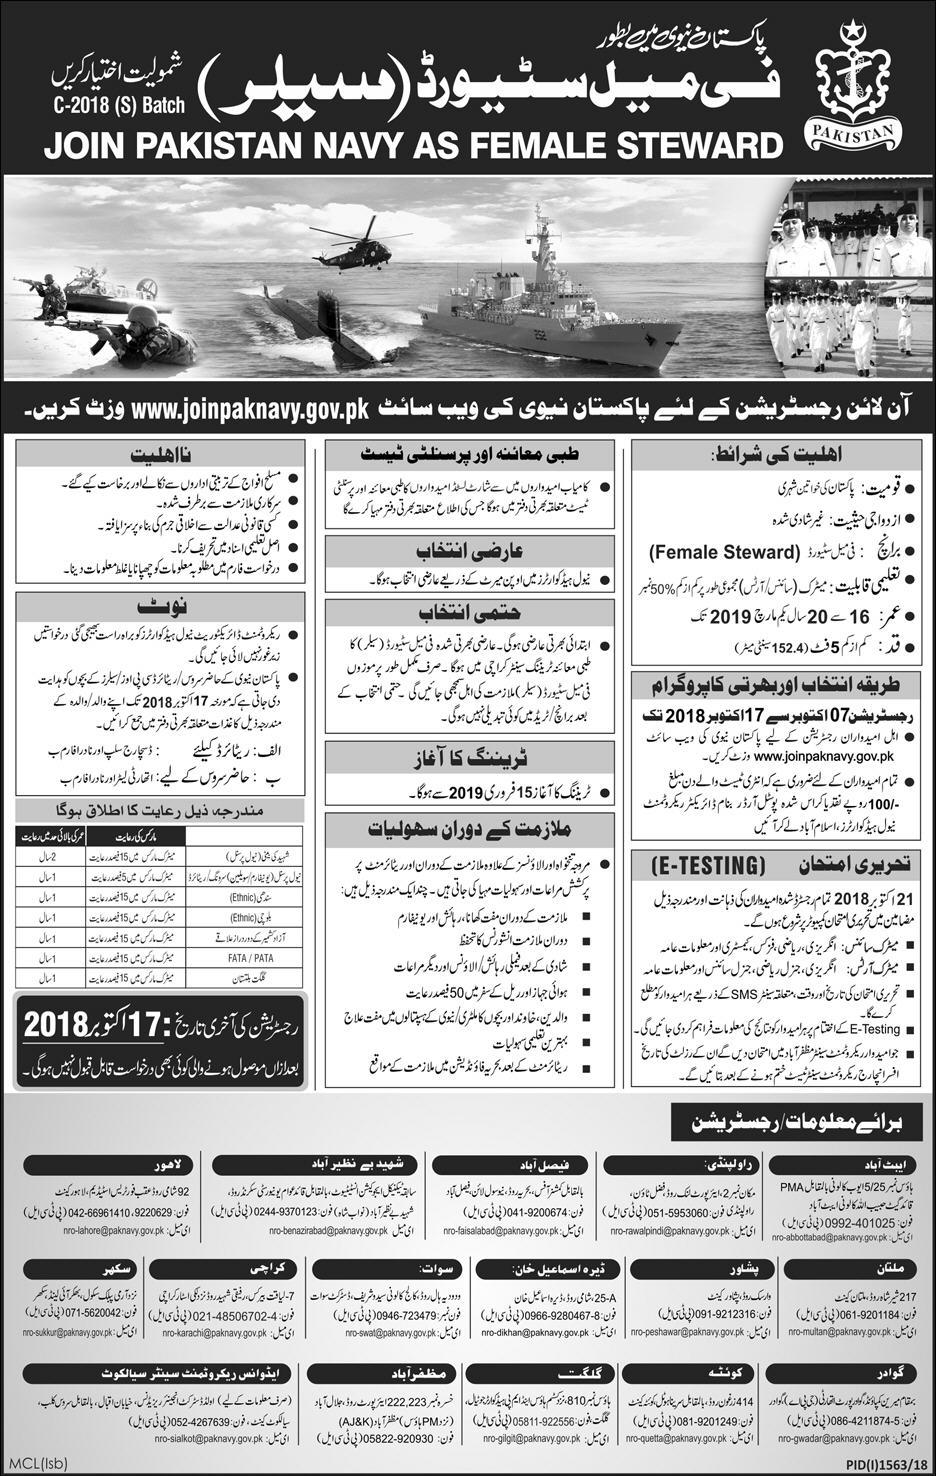 Join Pakistan Navy as Female Steward 2018